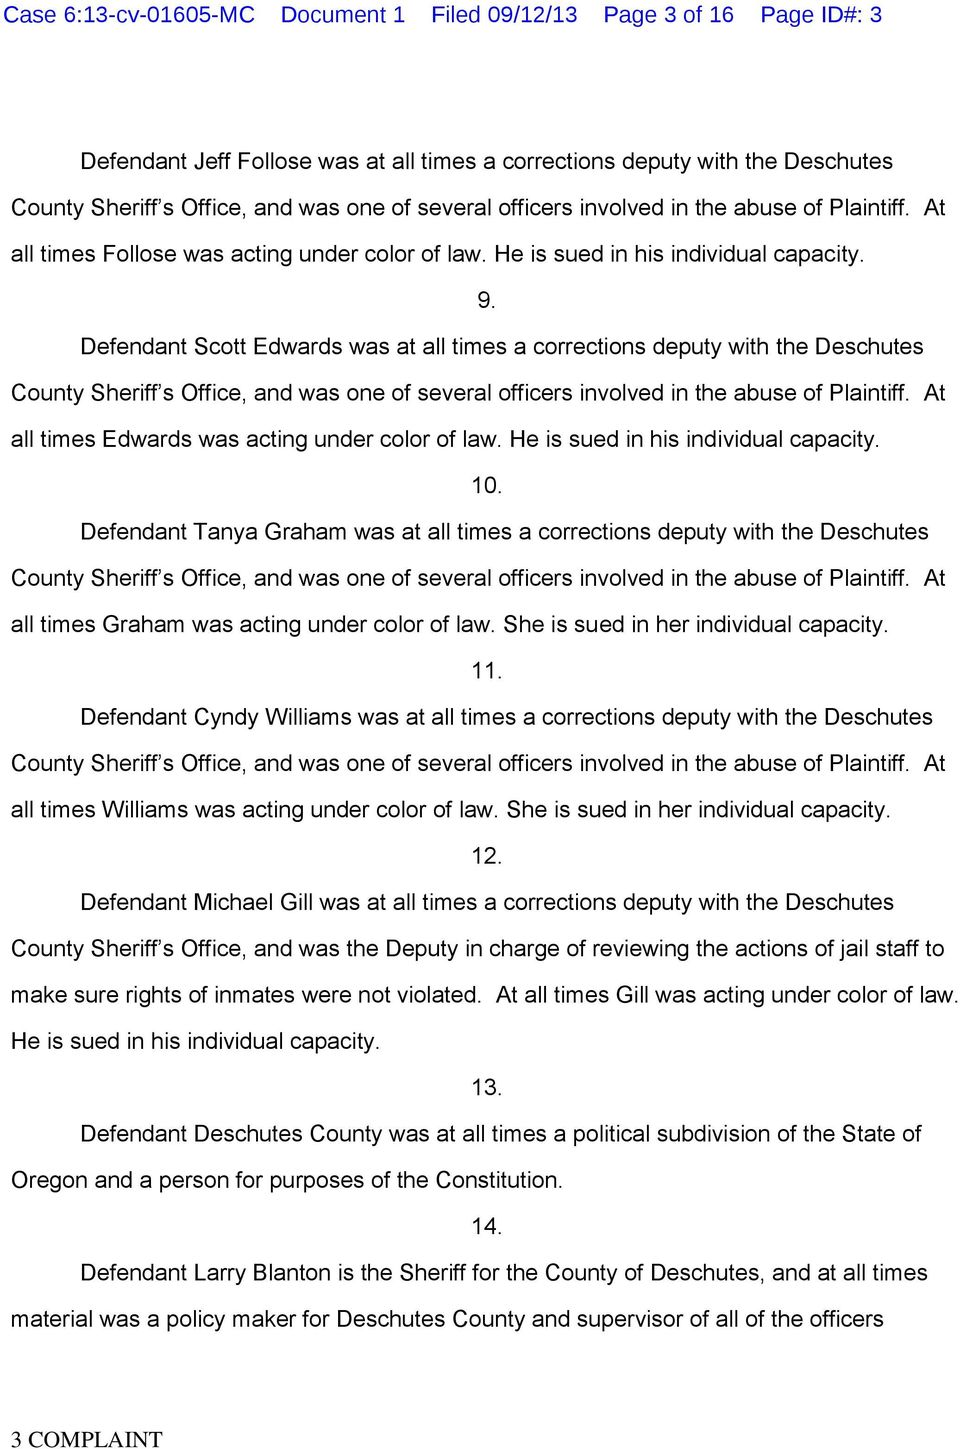 Case 6:13-cv MC Document 1 Filed 09/12/13 Page 1 of 16 Page